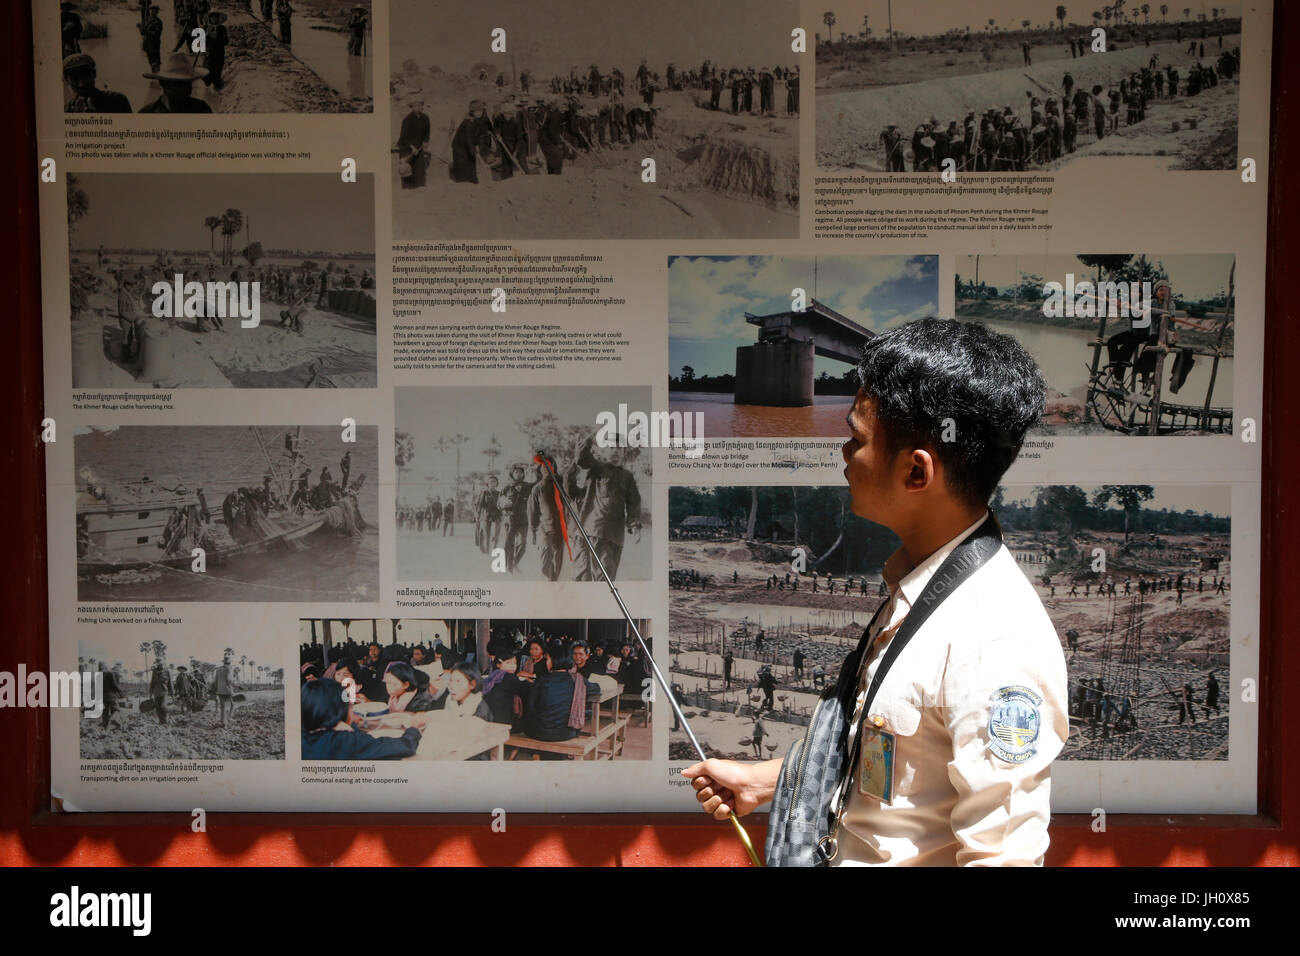 Khmer Rouge genocide memorial in Siem Reap. Cambodia. - Stock Image